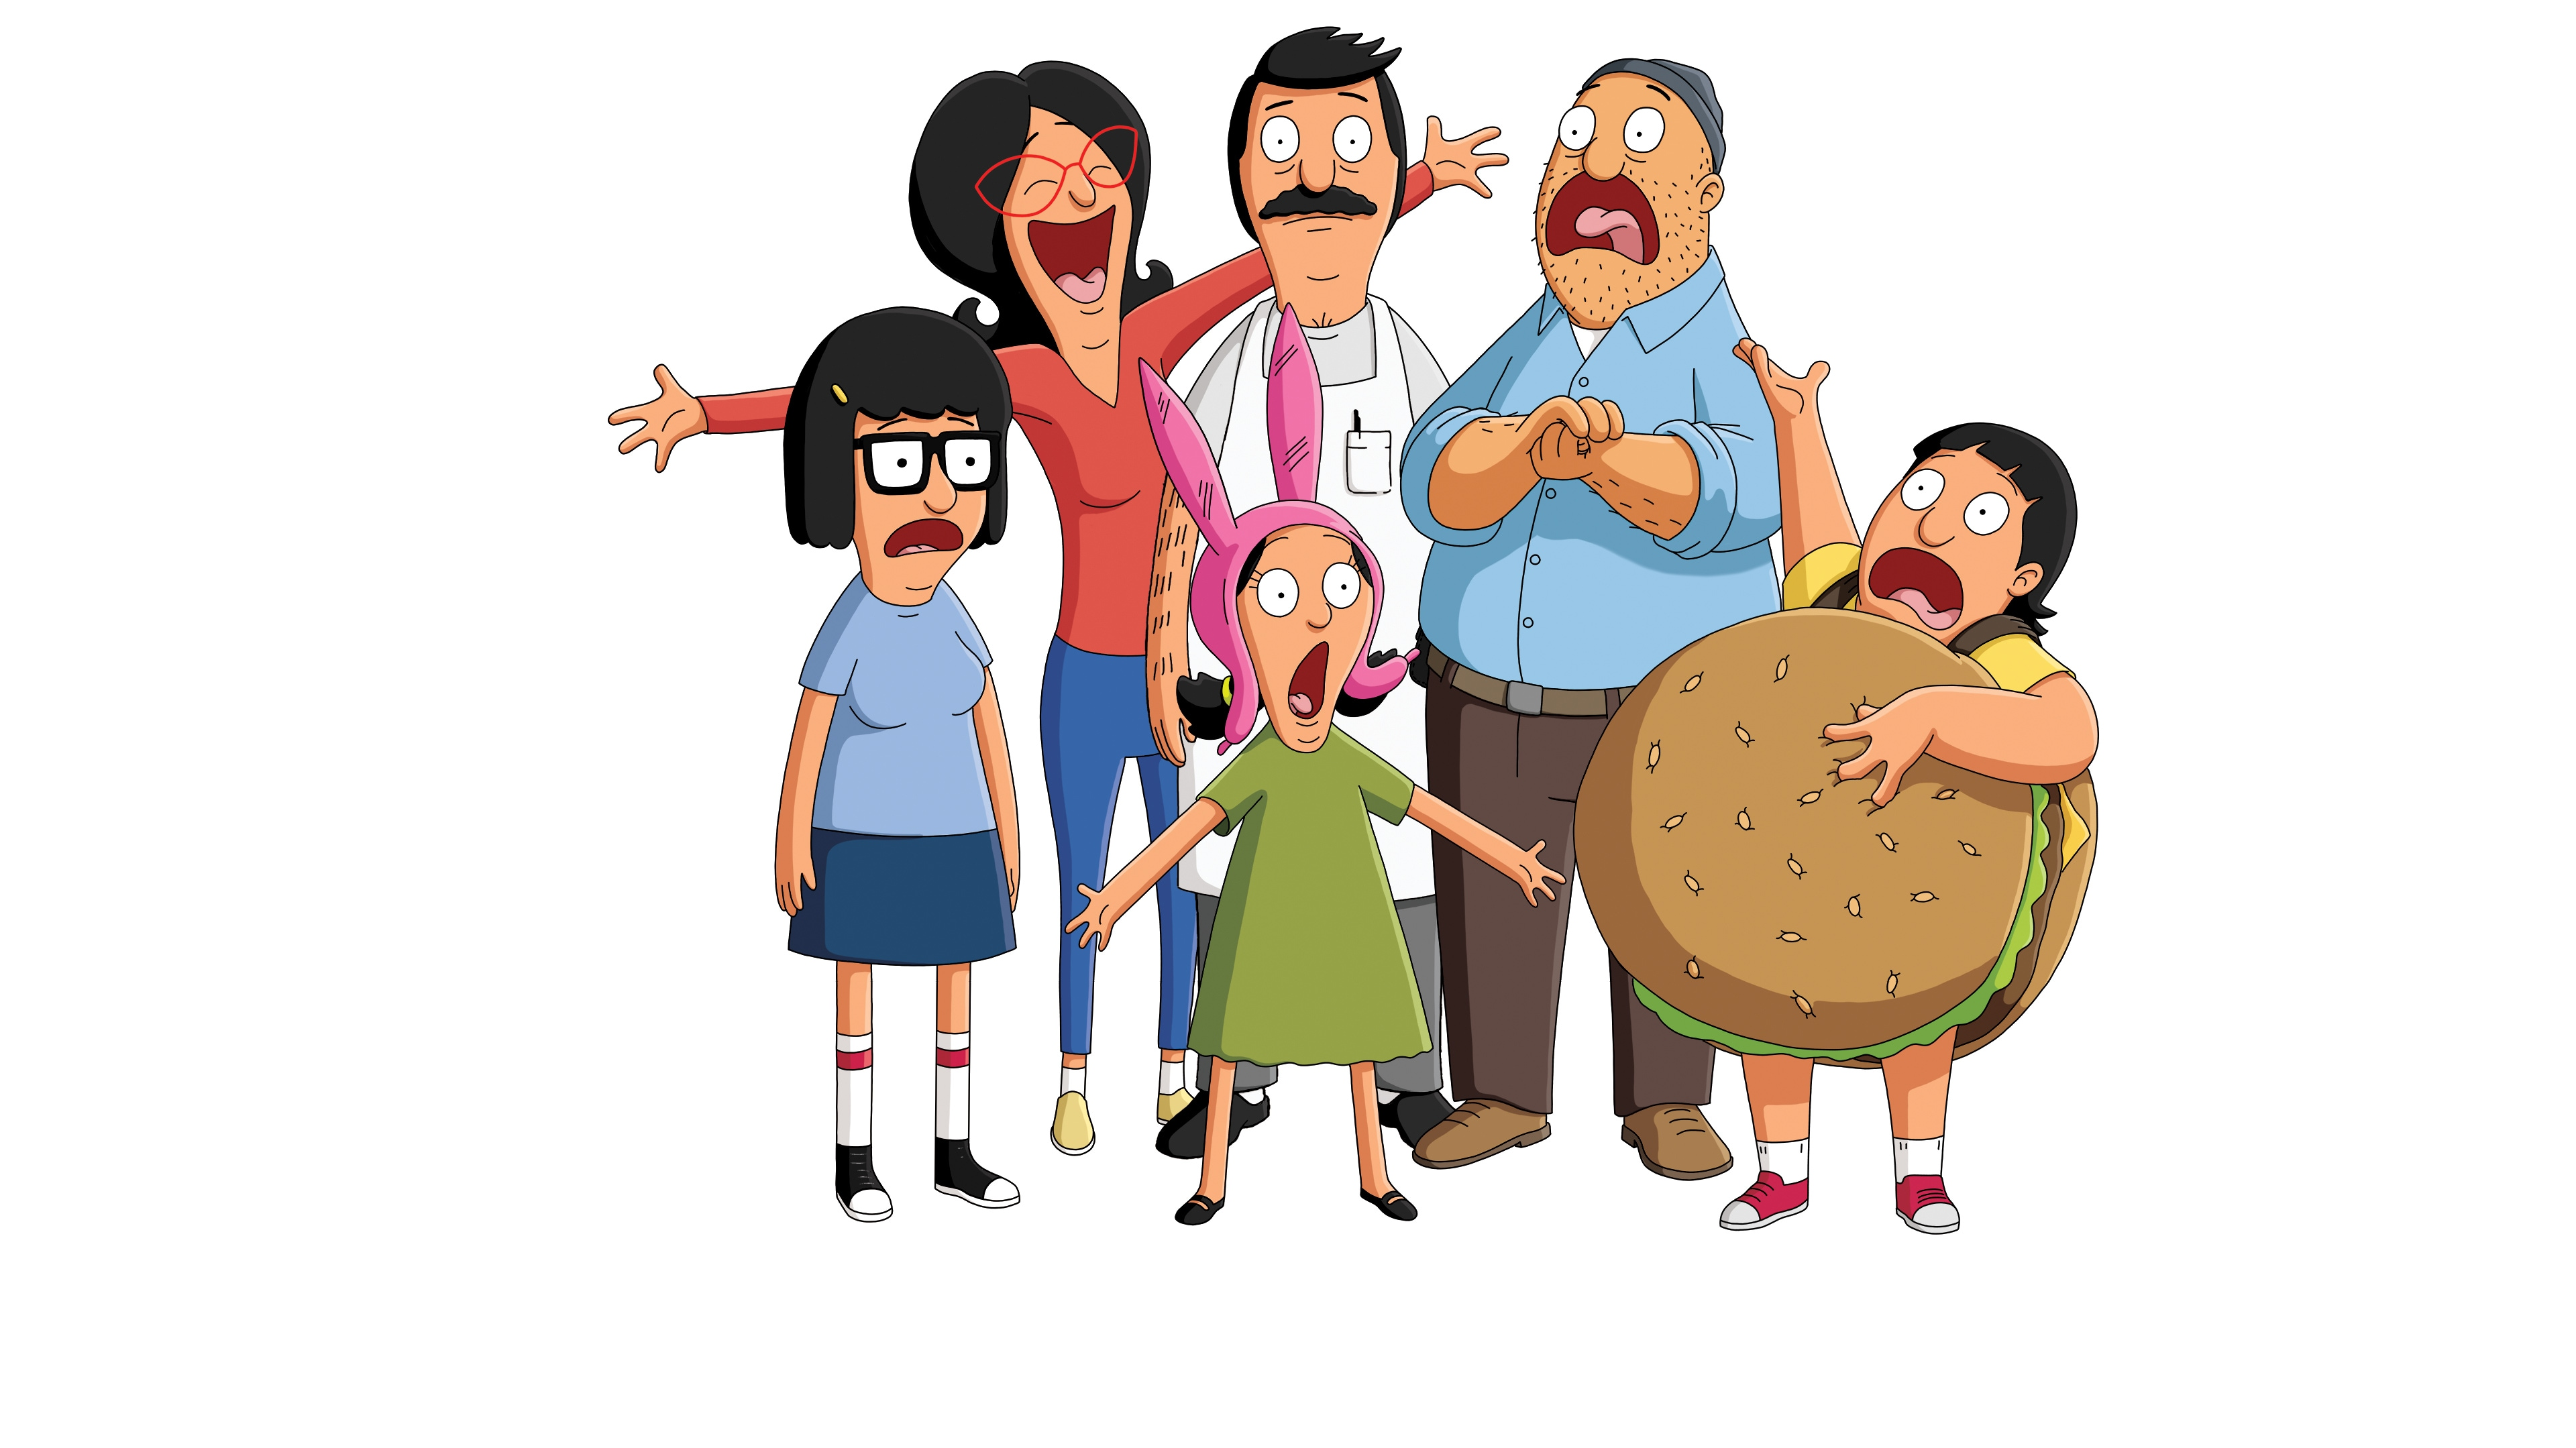 watch full episodes of bob's burgers with h. jon benjamin on fox